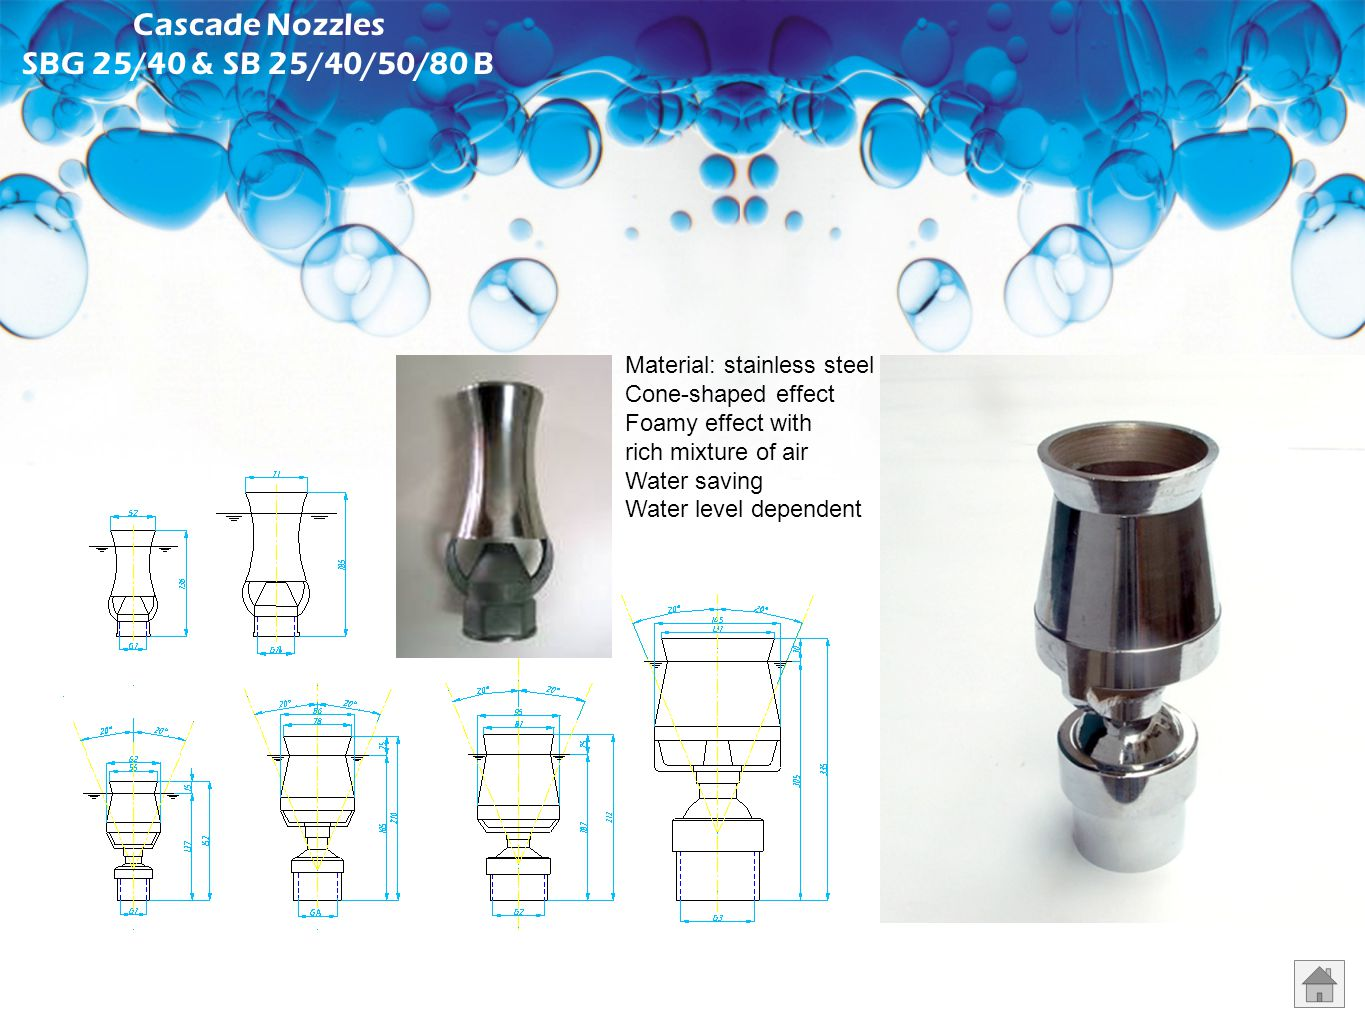 Comet Nozzles ZL 15/20/25/40/50/65/80 B Material: stainless steel Clear stream jet Good resistance to wind With flow regulator Water level independent